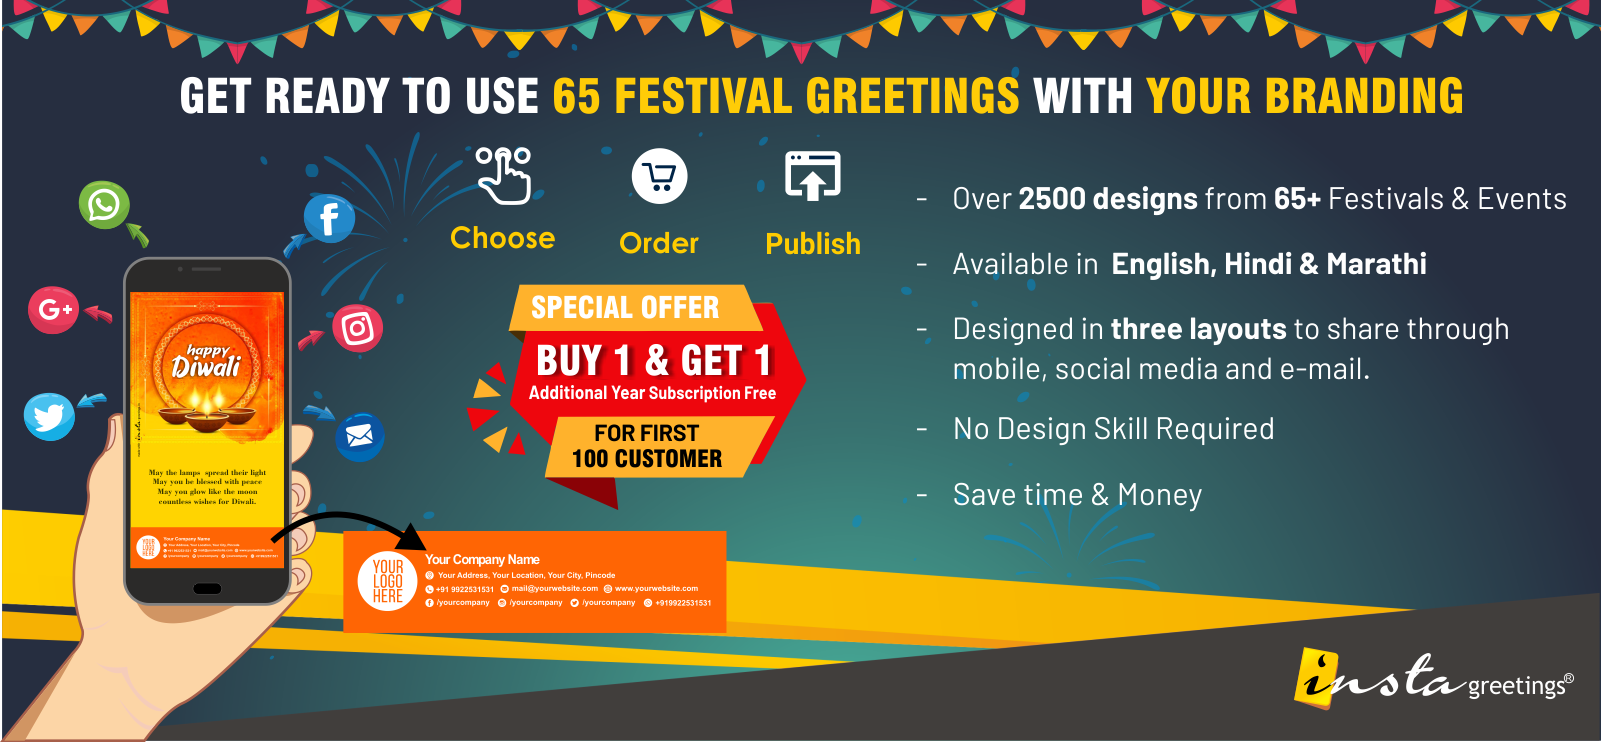 GET 65 Festival Greetings